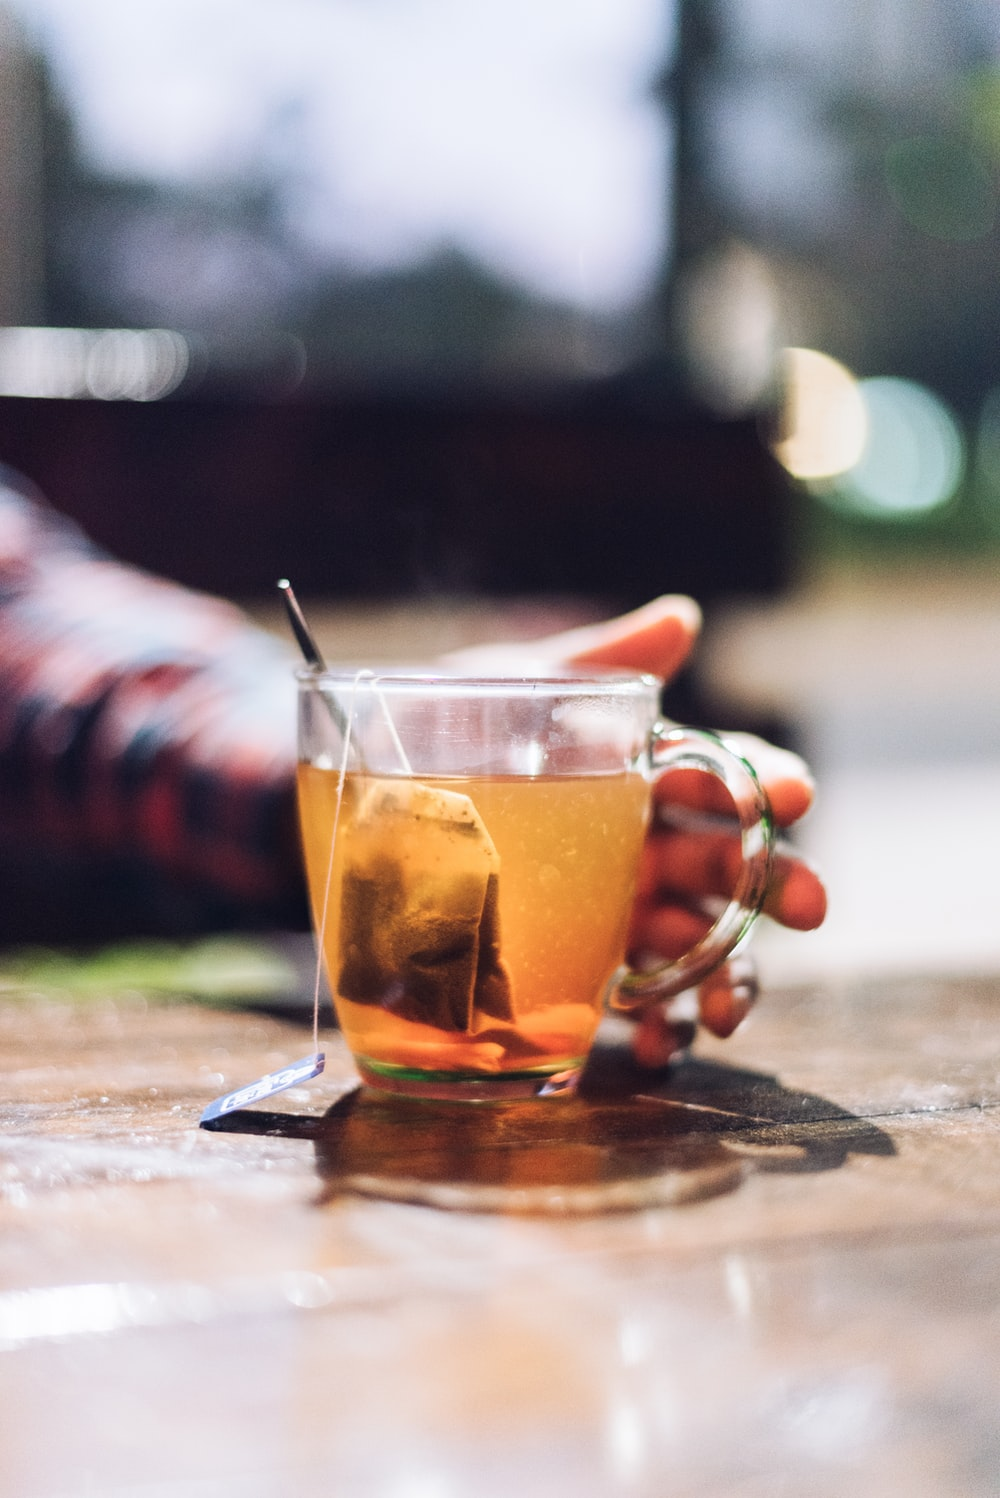 selective focus photography of man reaching for filled glass teacup